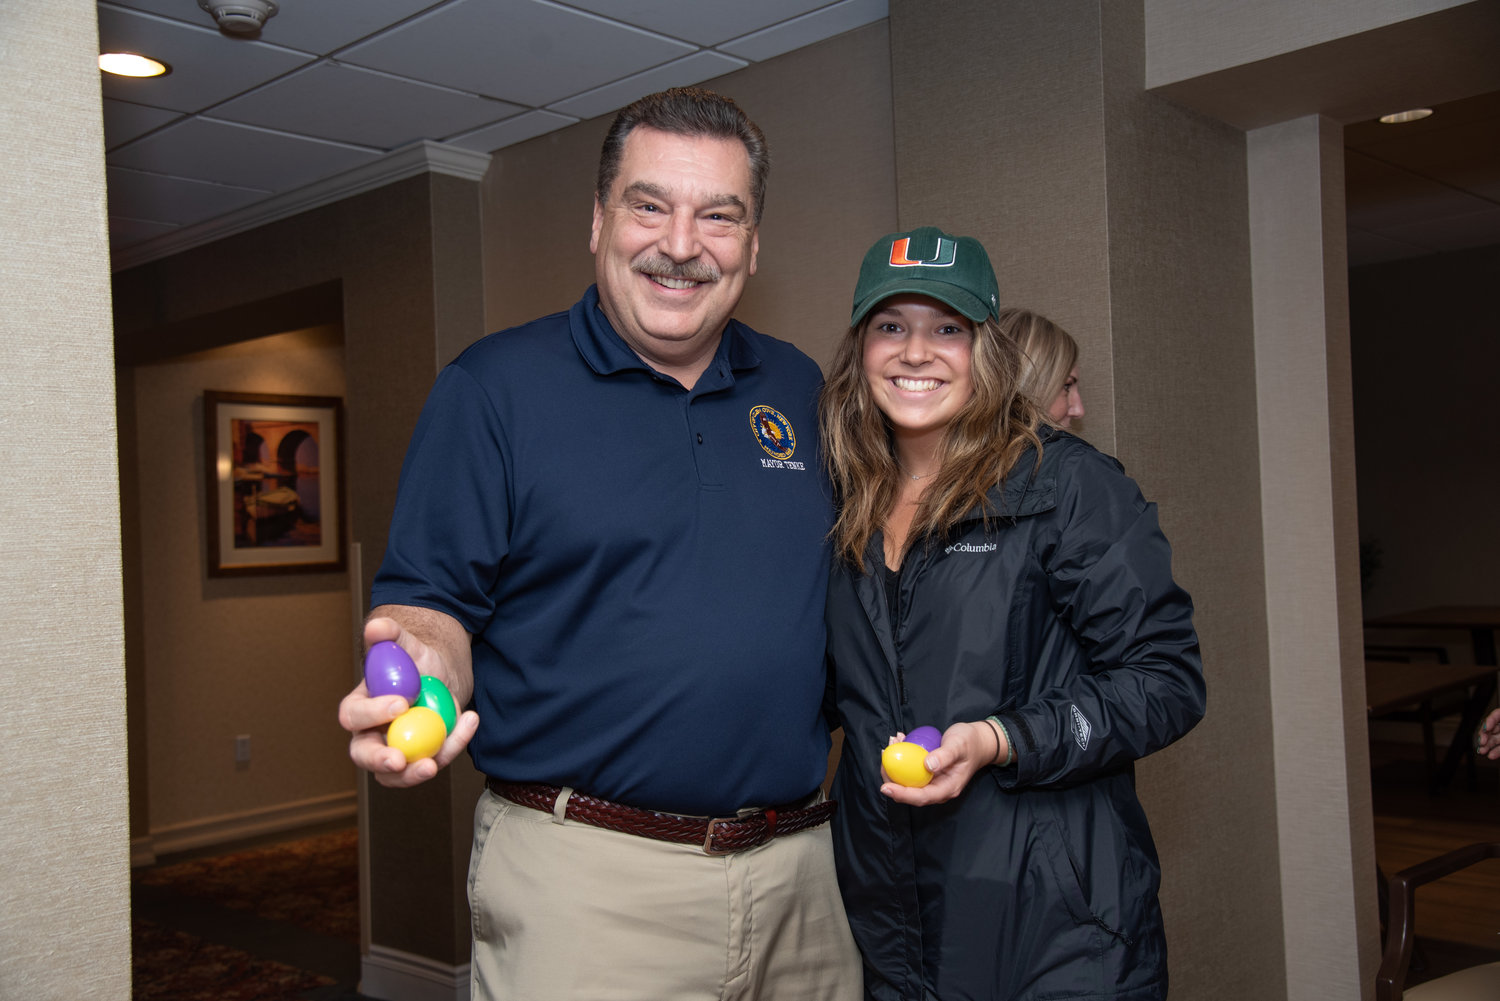 Glen Cove Mayor Tim Tenke collected eggs with his daughter, Grace.